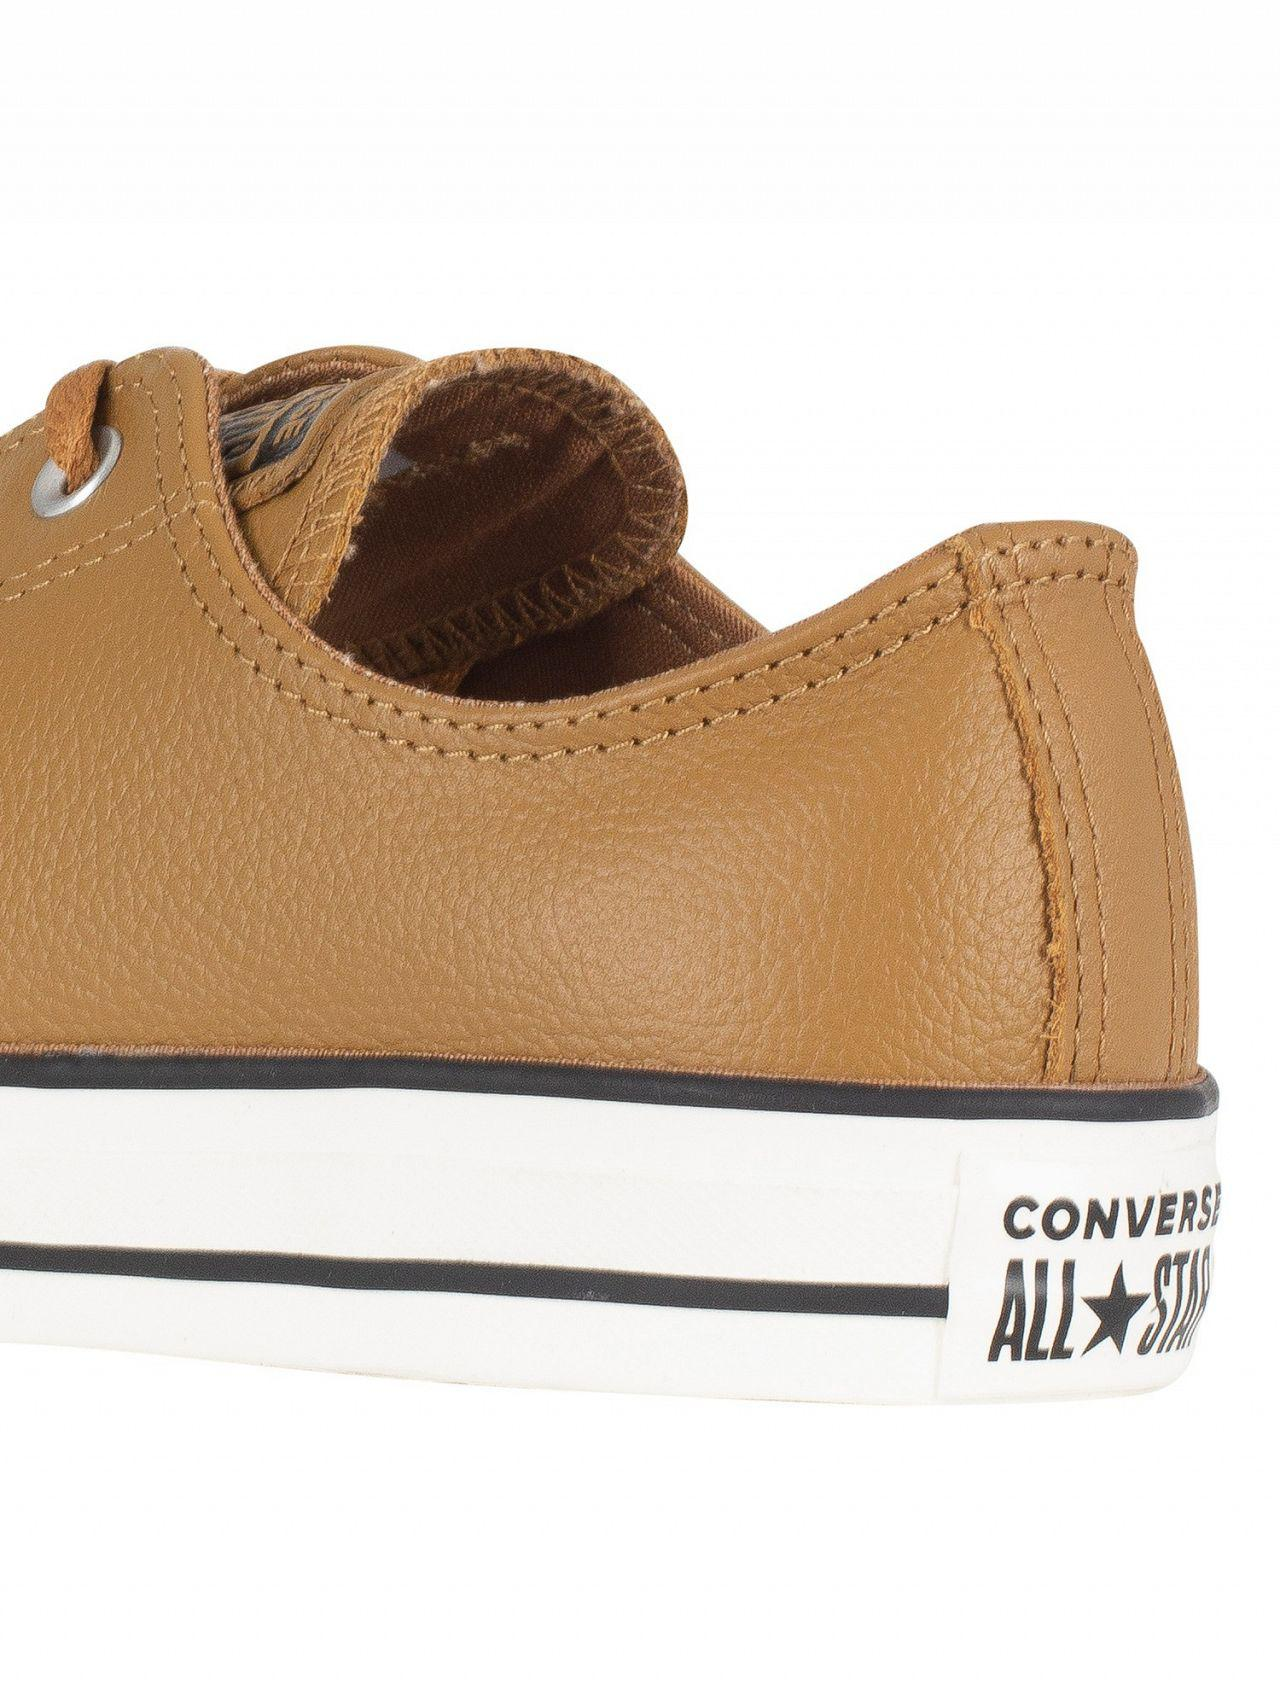 5921b32525c5 Lyst - Converse Burnt Caramel Ct All Star Ox Leather Trainers for Men